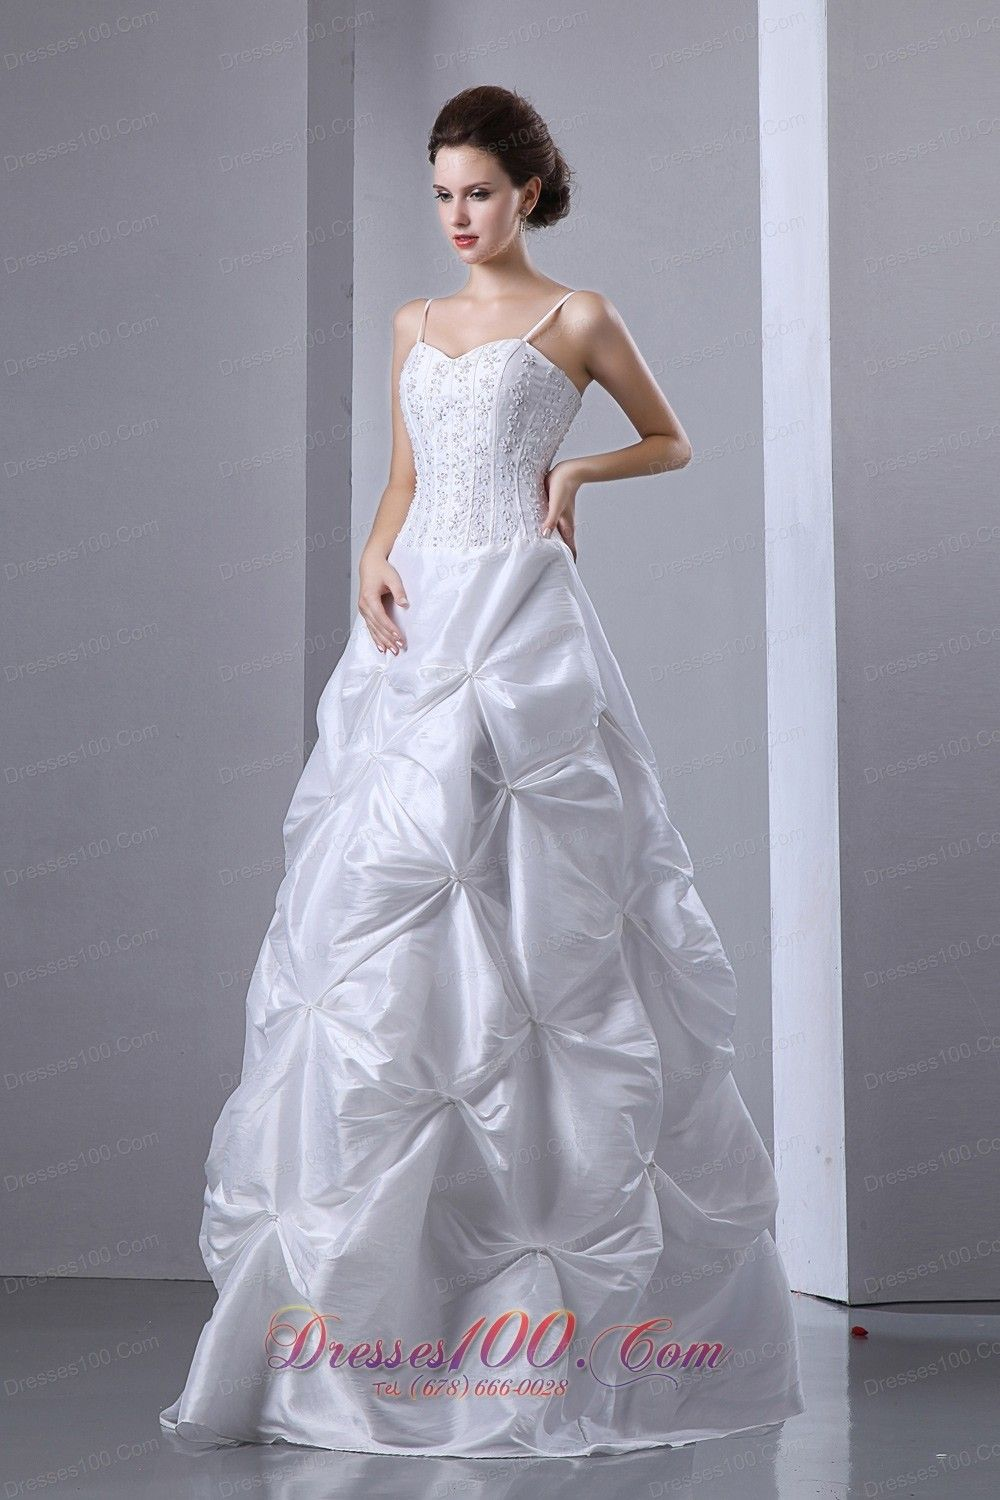 stylish wedding dress in Hereford,Texas wedding gown bridal gown ...